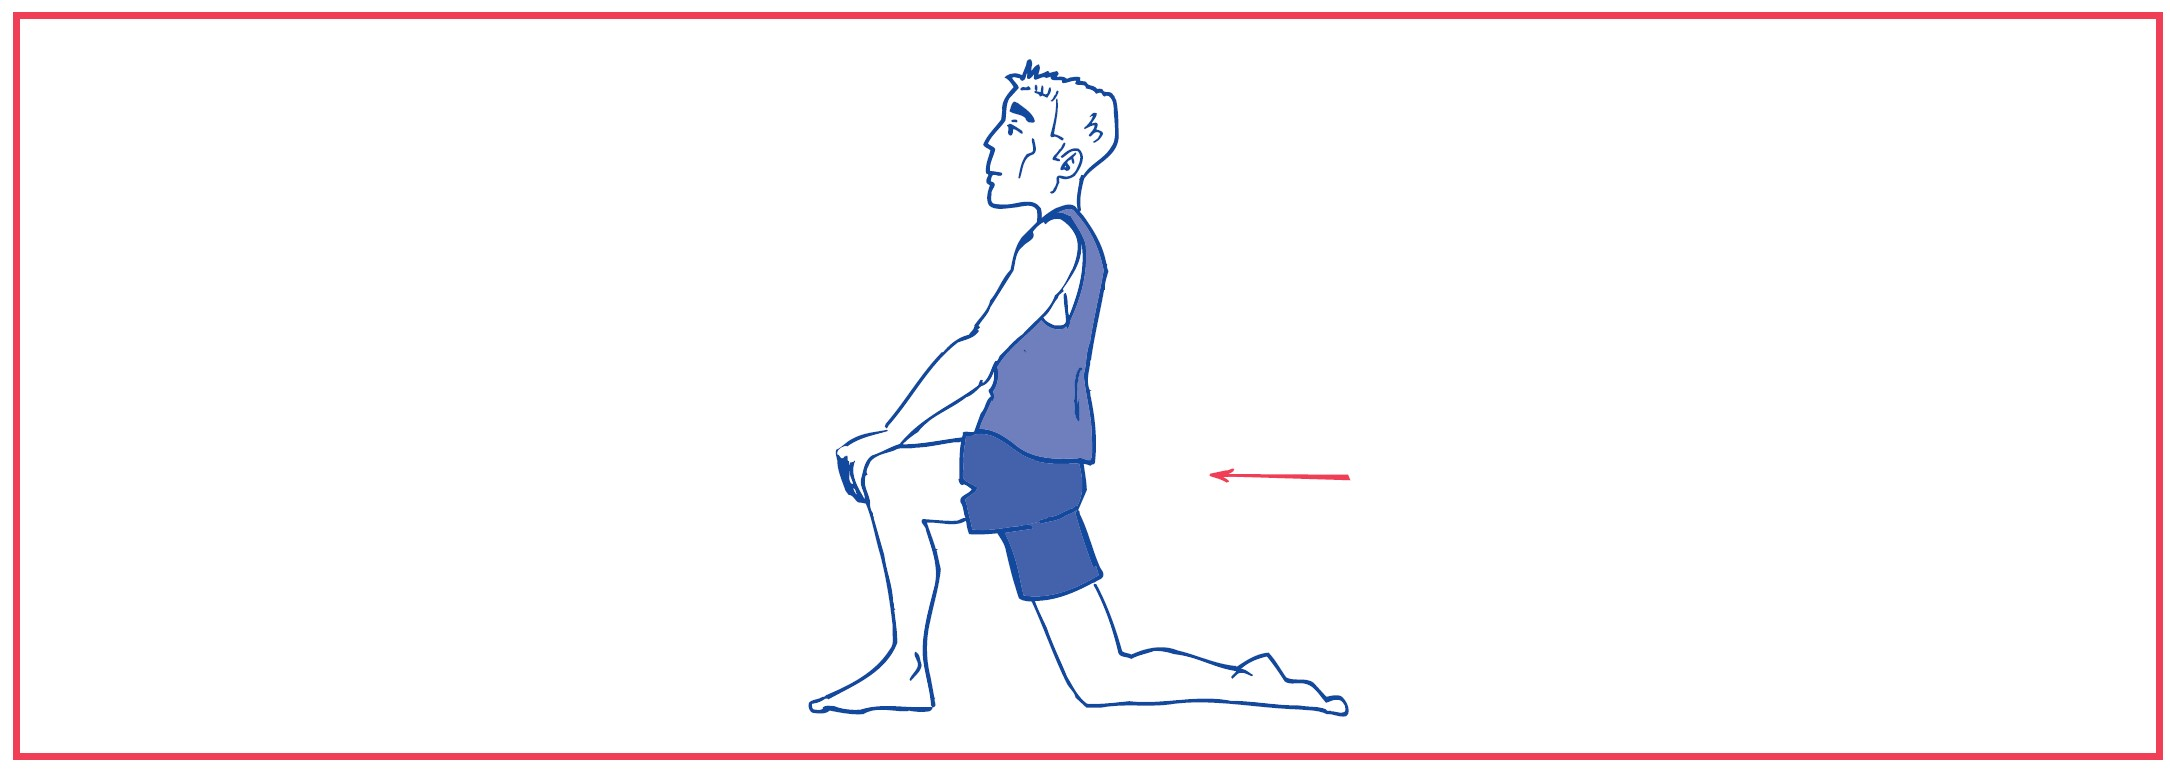 3. Stretching ilio-psoas muscle